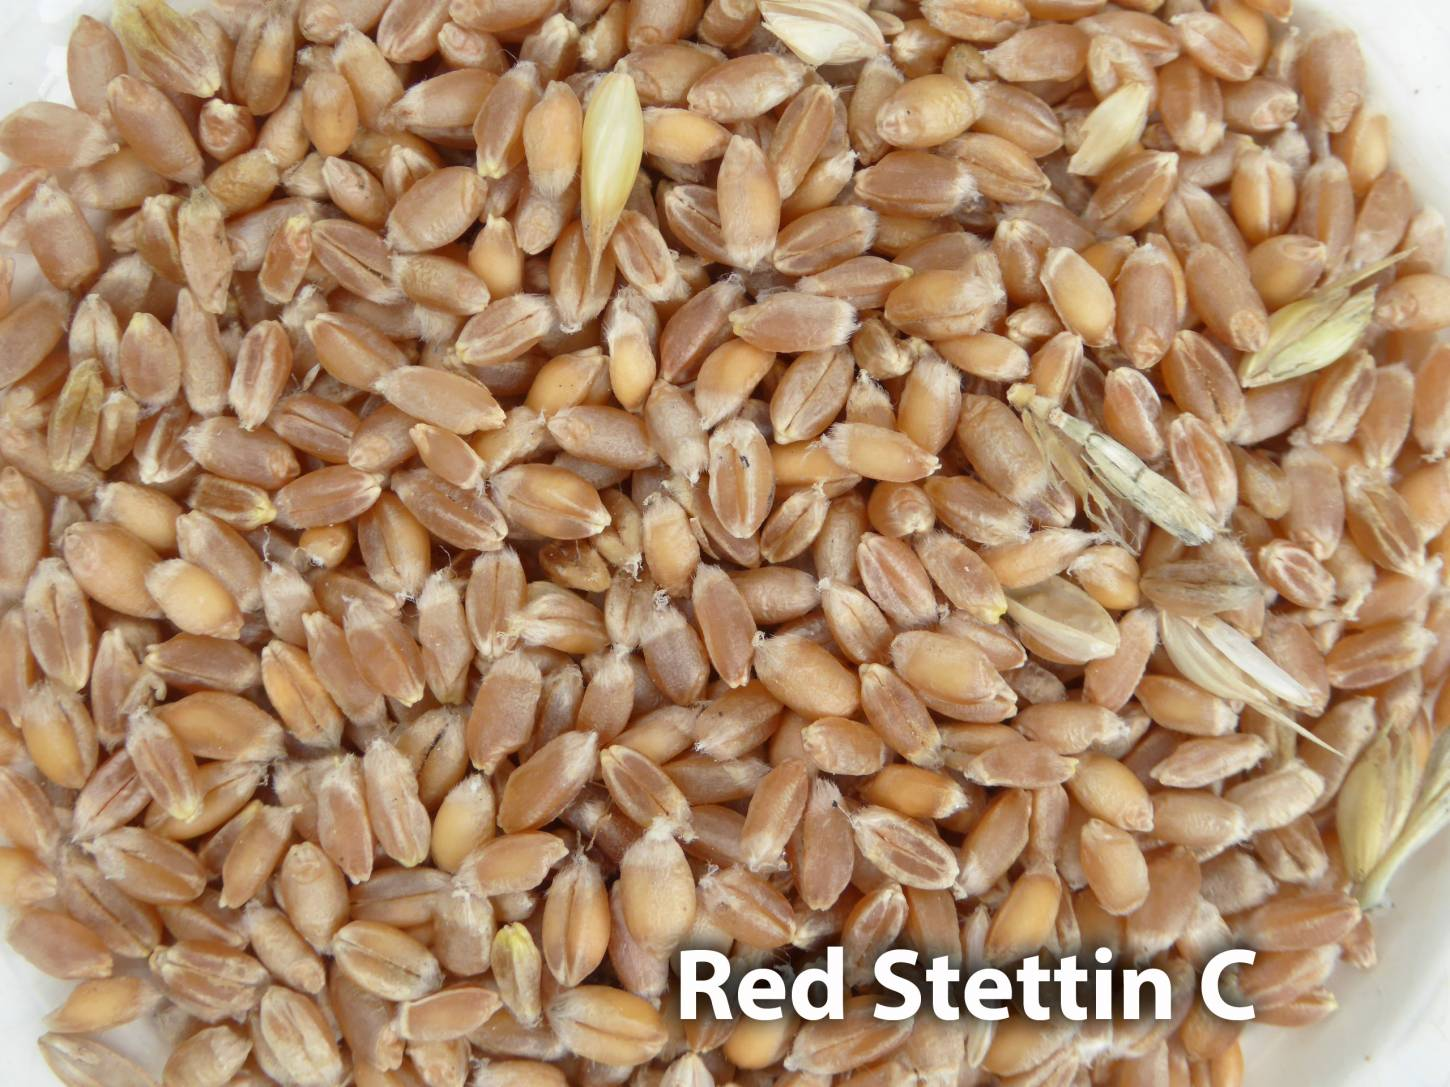 <a href='http://www.wheat-gateway.org.uk/hub.php?ID=57' target='_blank'>Red Stettin</a> grain samples, Red Stettin C